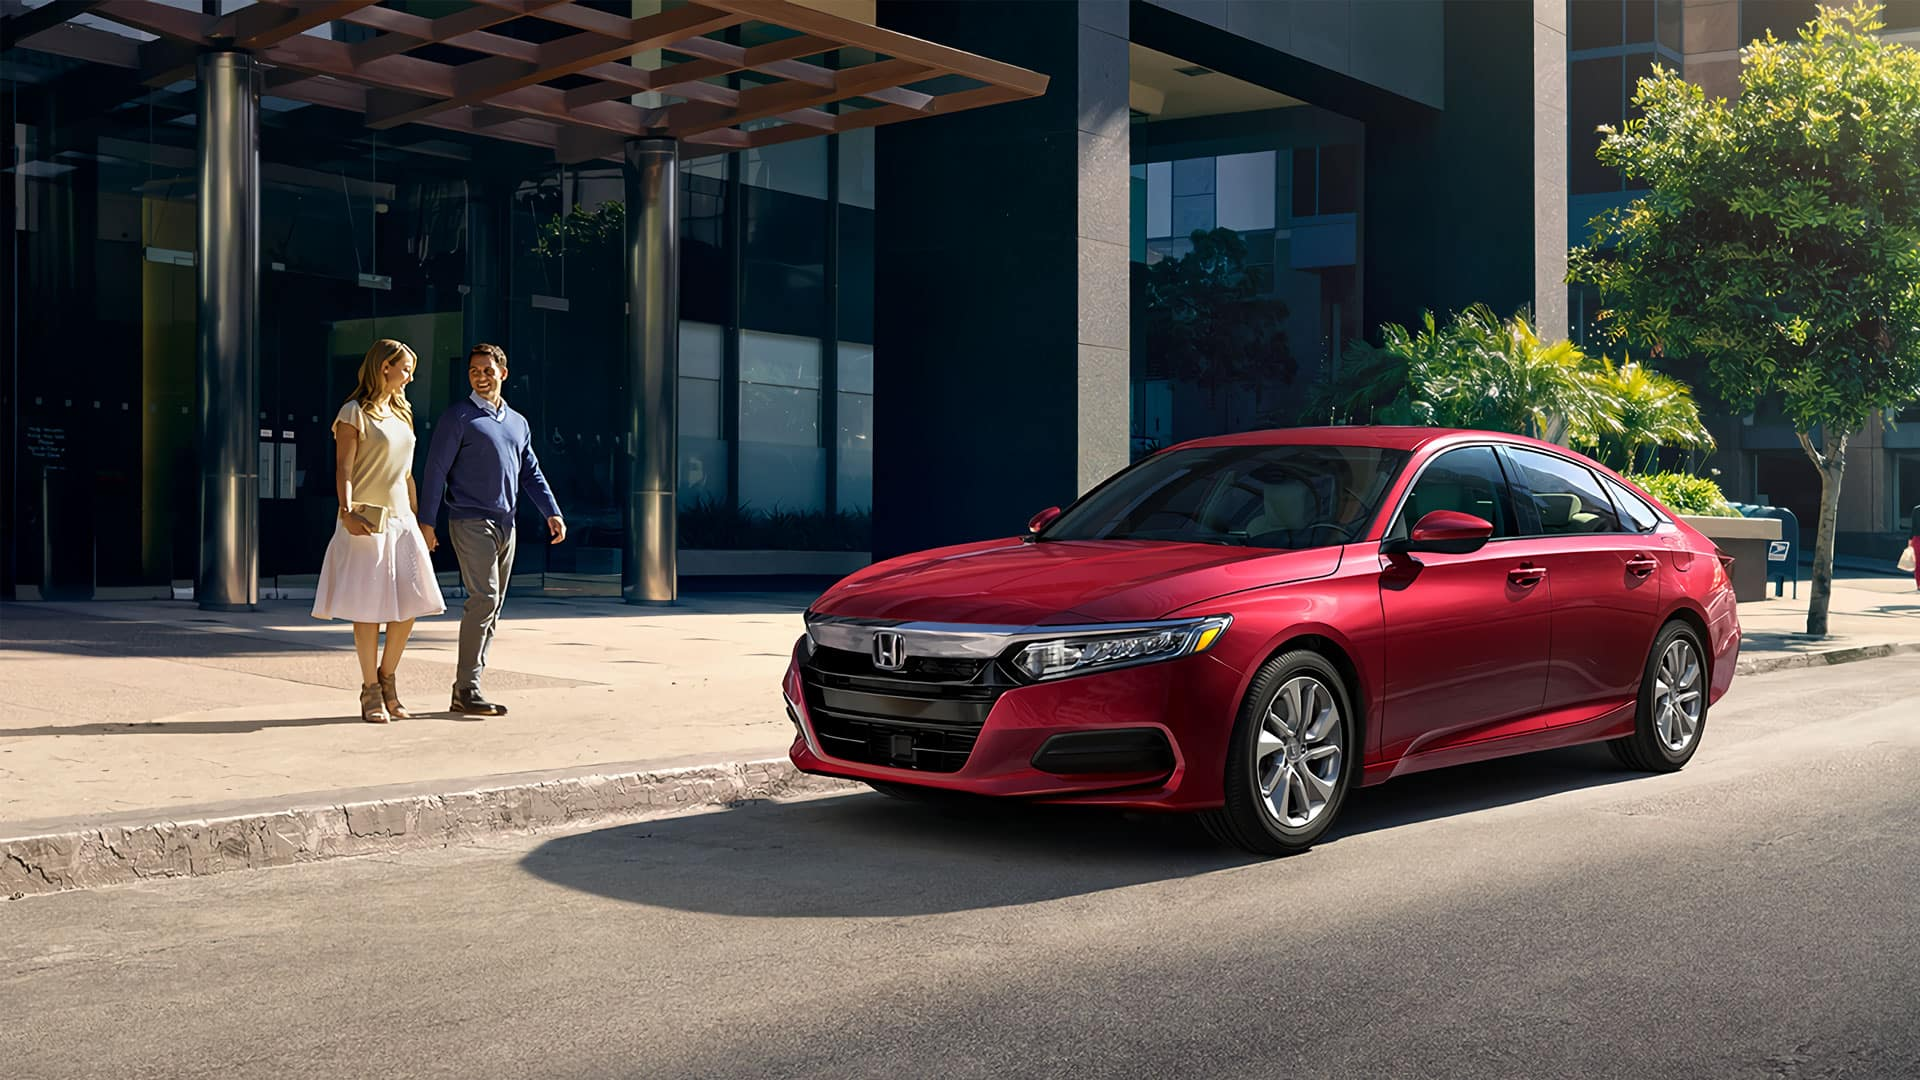 Honda Accord Hero Image